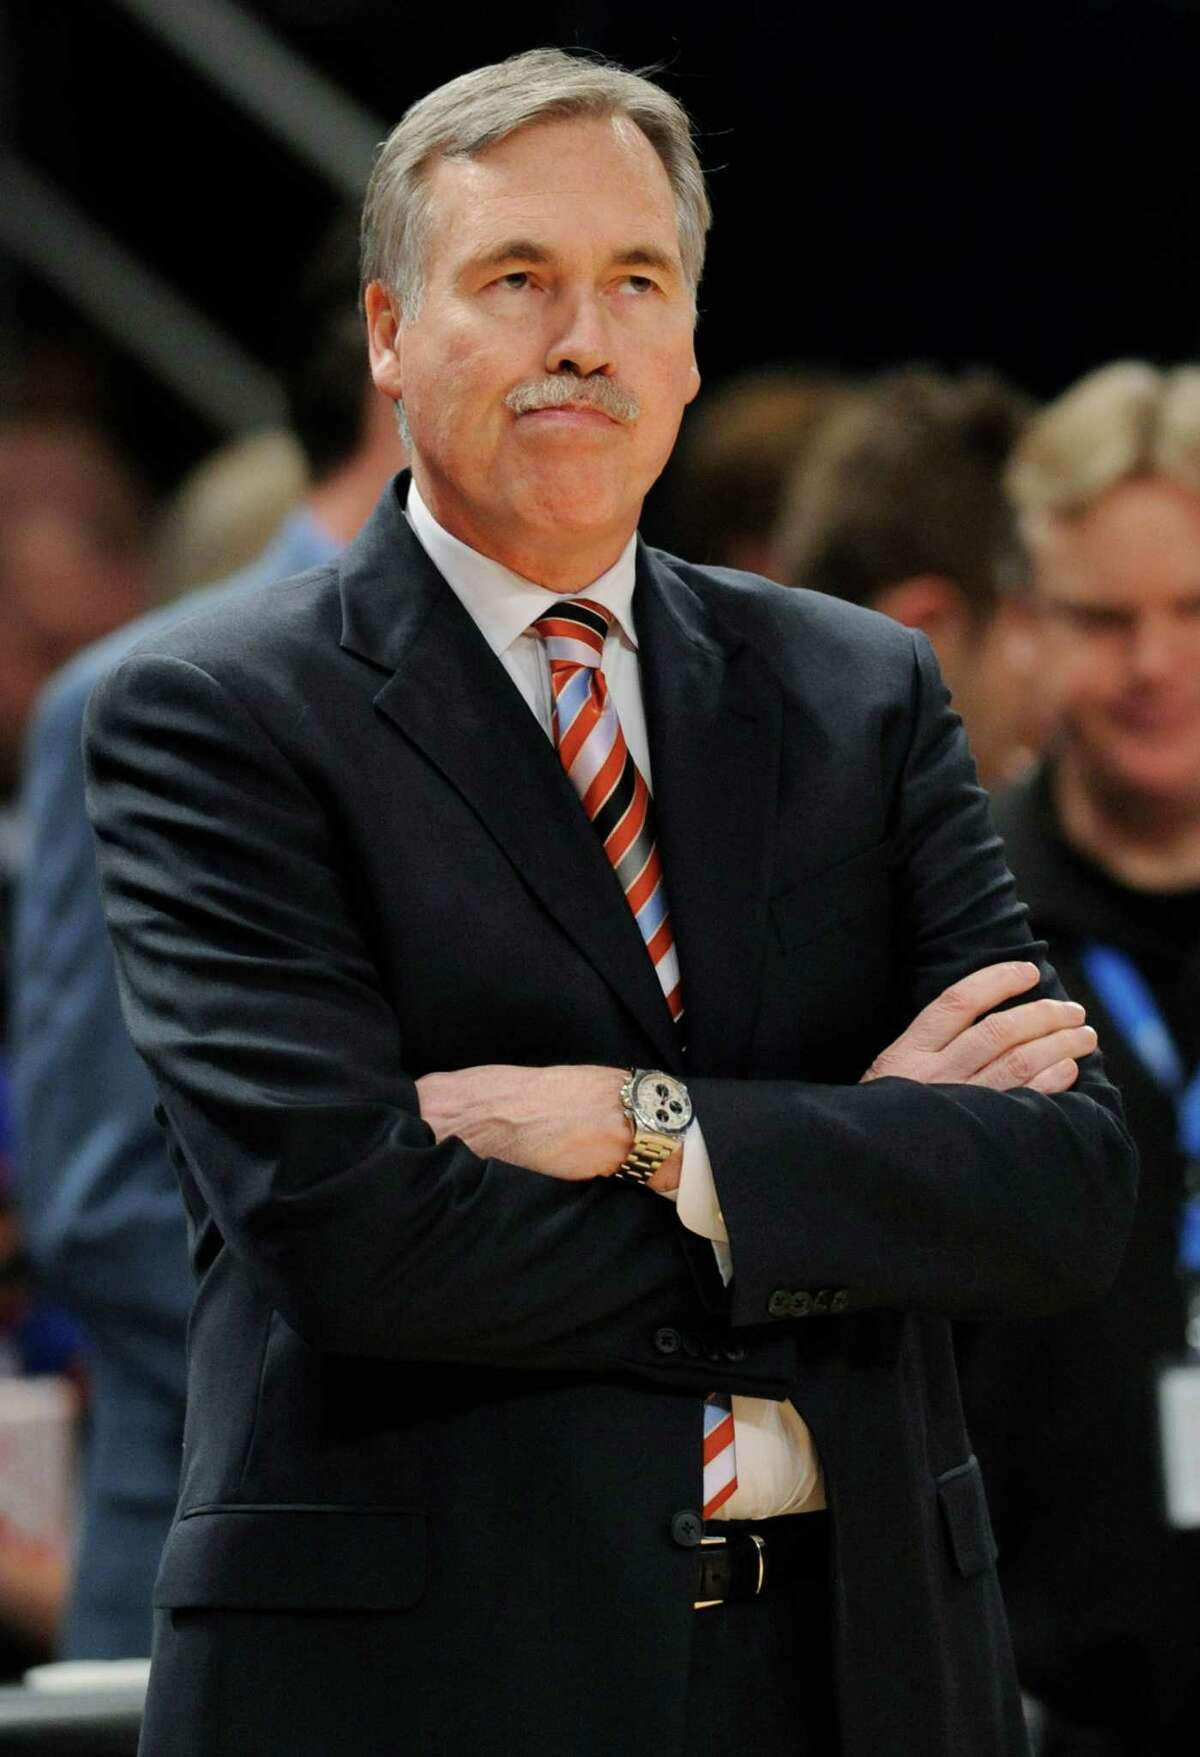 Former Suns and Knicks coach Mike D'Antoni interviewed for the Rockets' coaching vacancy.